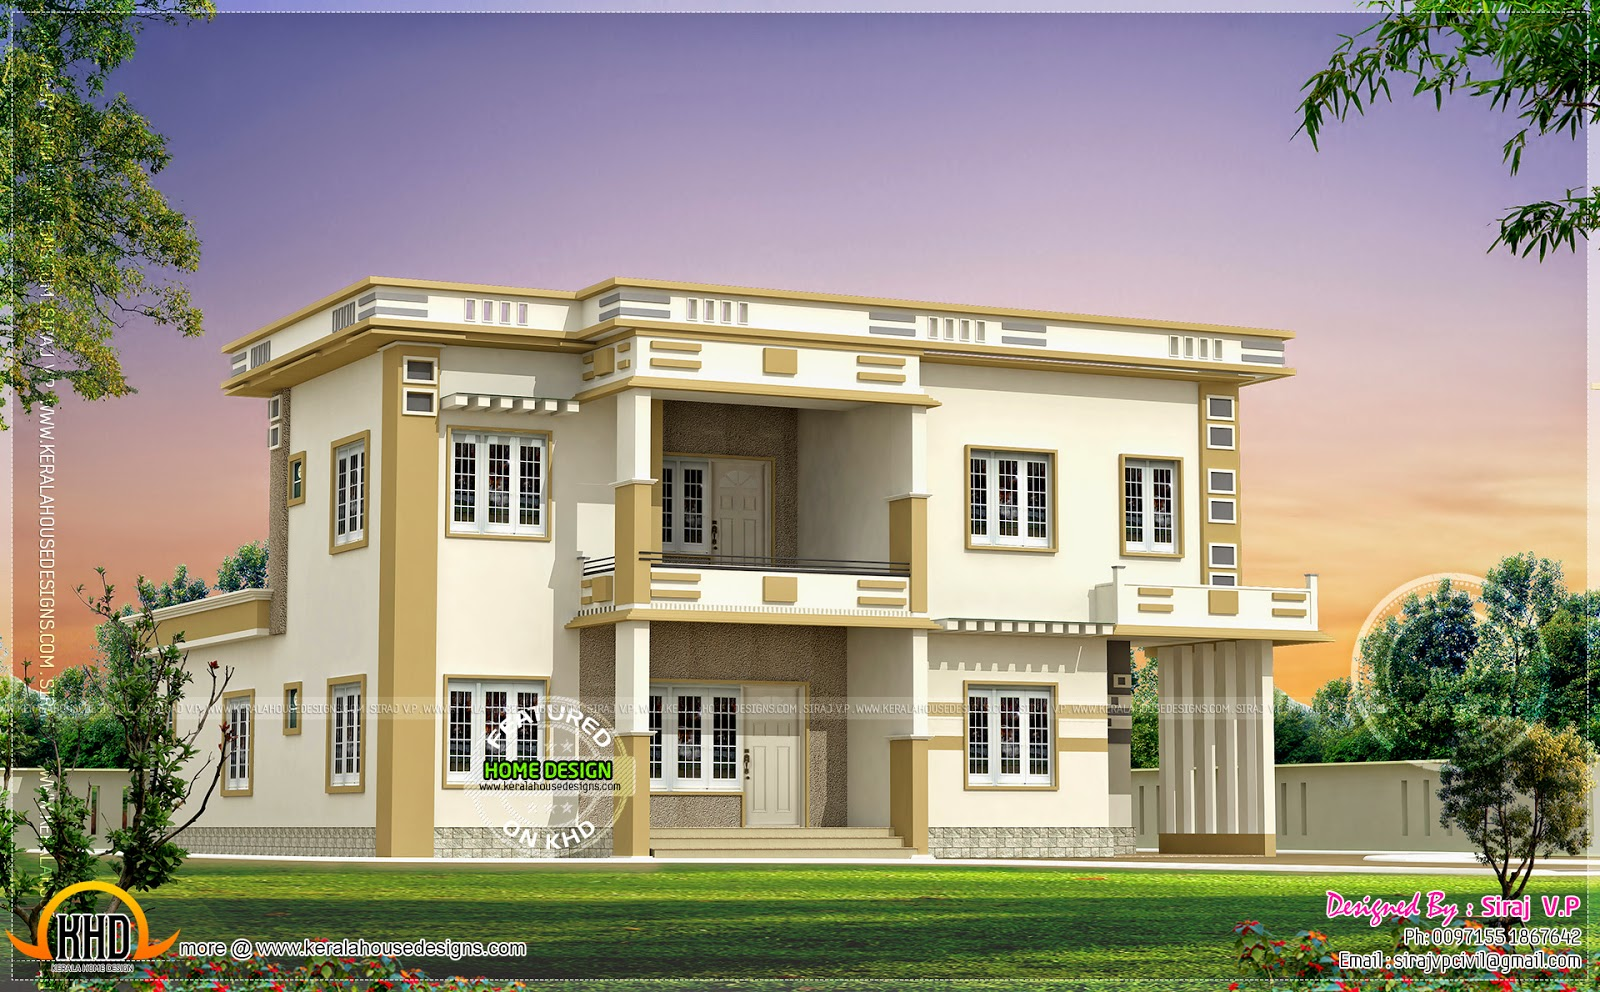 Contemporary villa in different color combinations Indian house color combinations